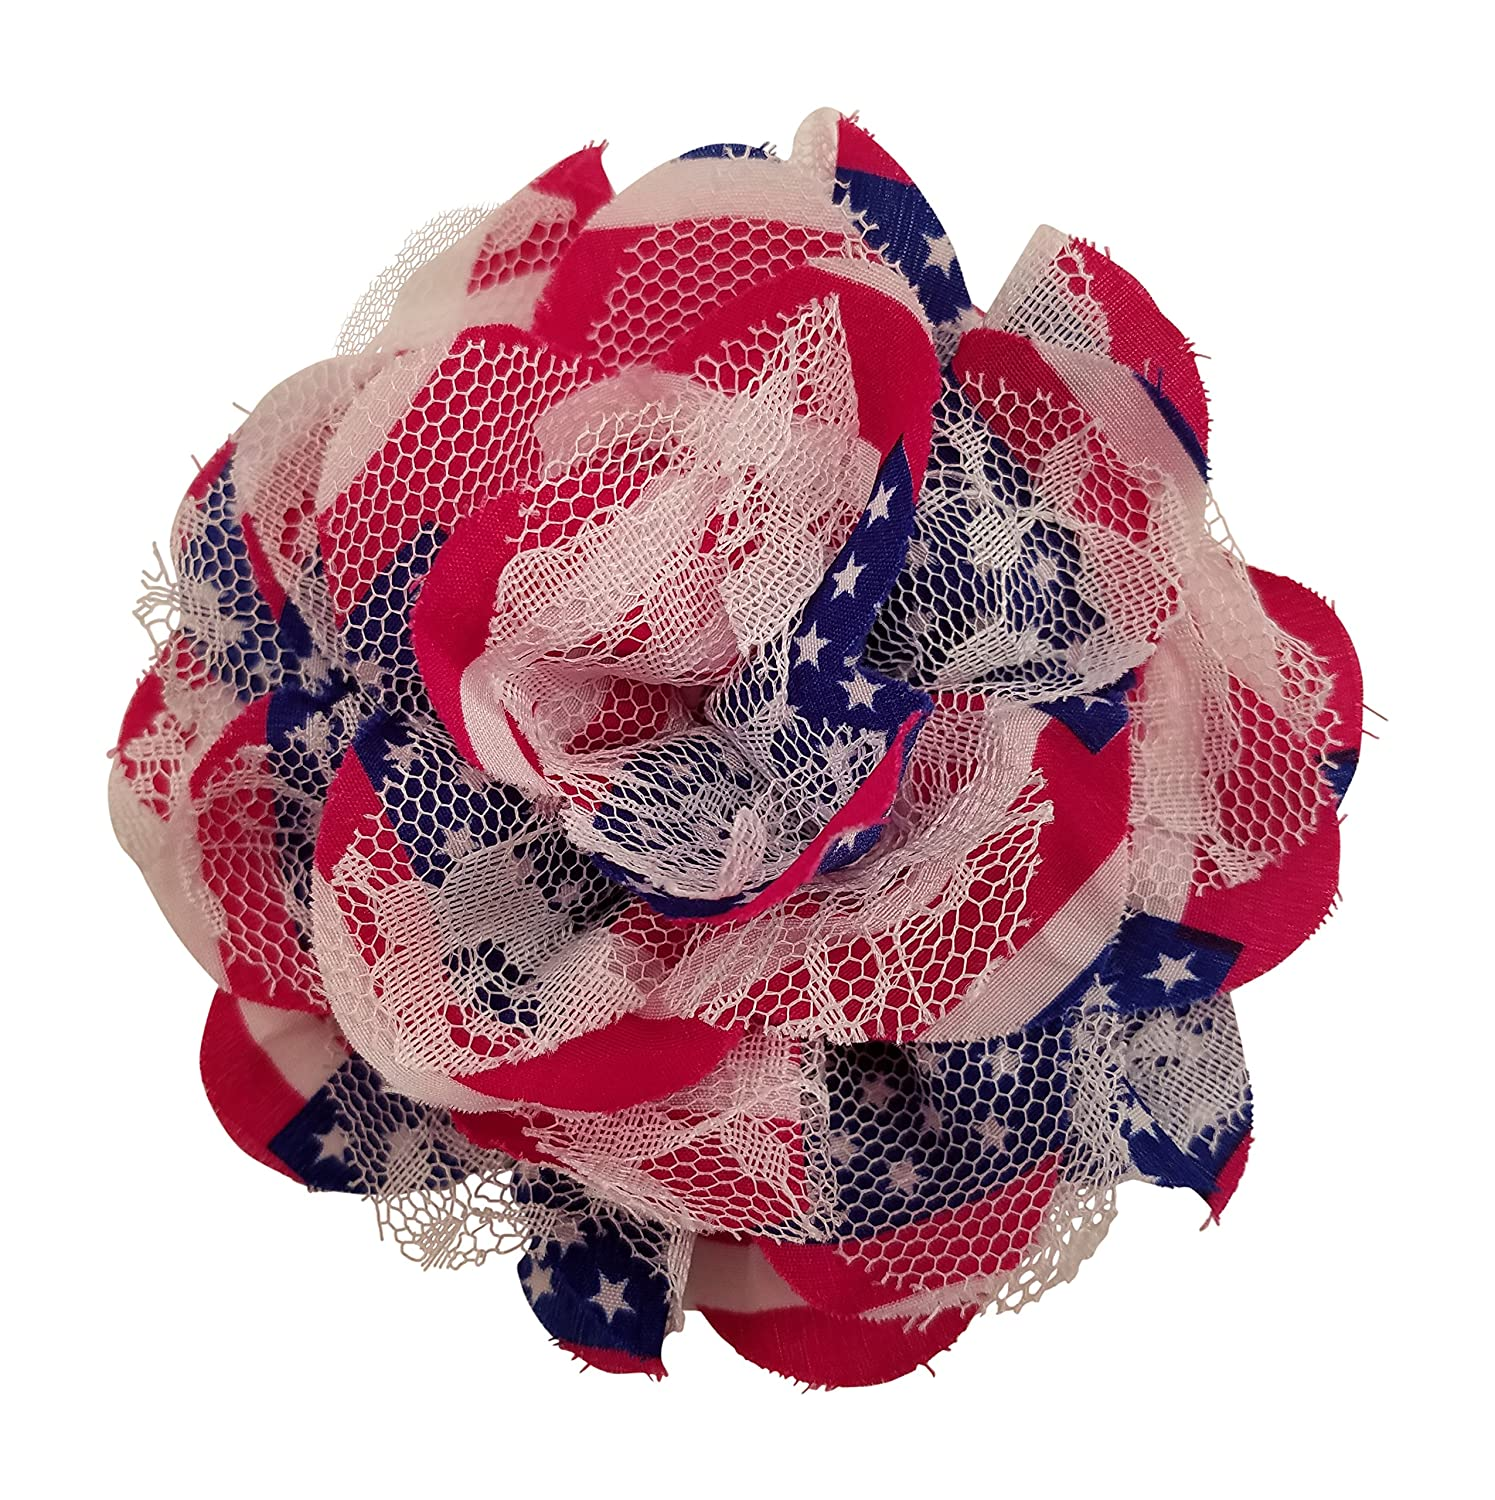 Pack of 6 Chiffon Fabric Flowers or Crafts Patriotic 4th of July Lace Flowers for Headbands Decorations Red White and Blue